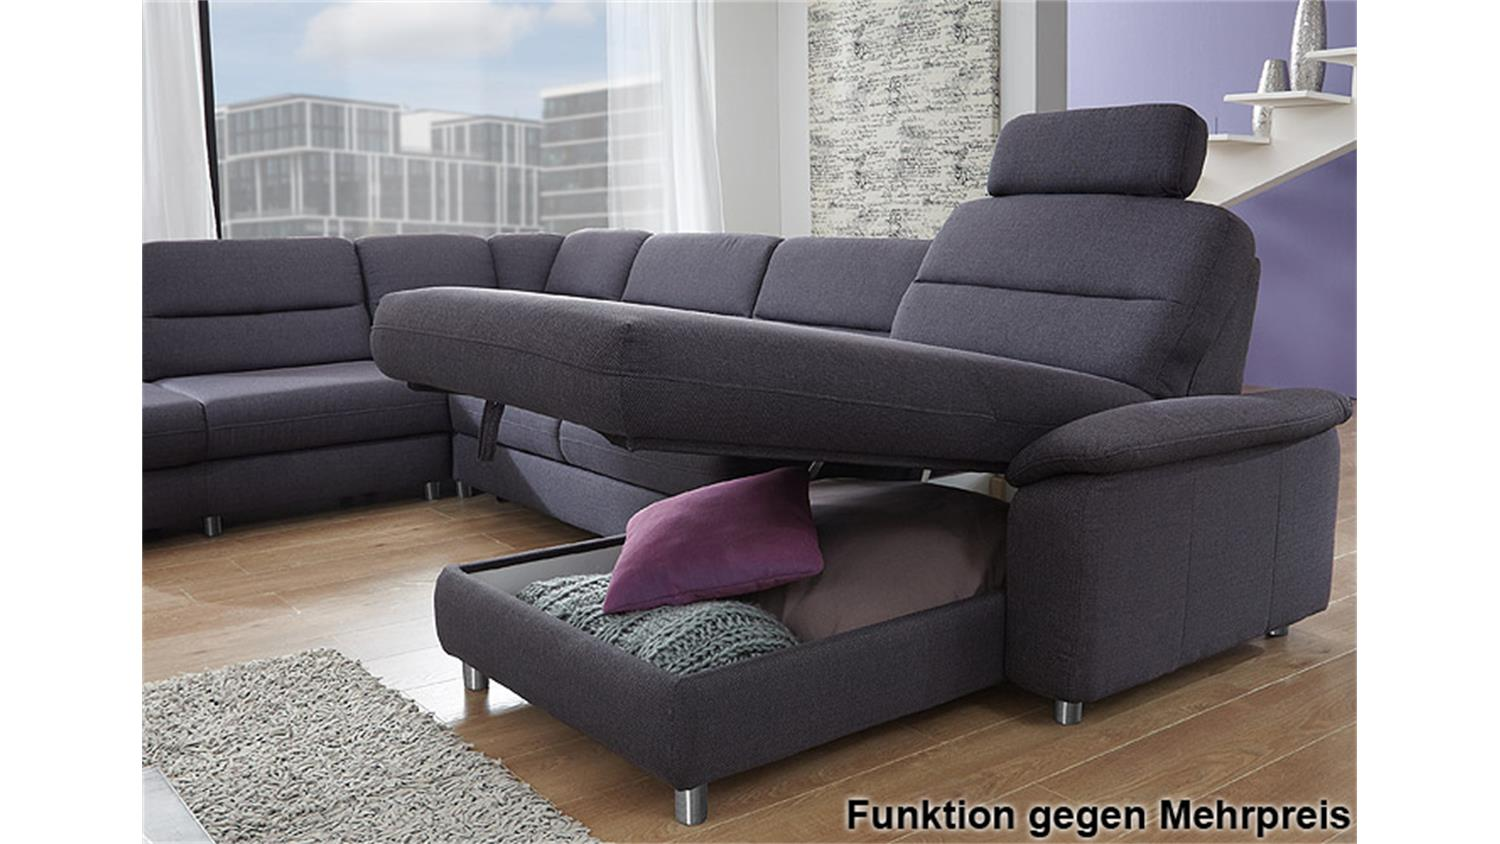 sofa mit longchair sofa mit longchair with sofa mit longchair trendy almere sofa mit longchair. Black Bedroom Furniture Sets. Home Design Ideas